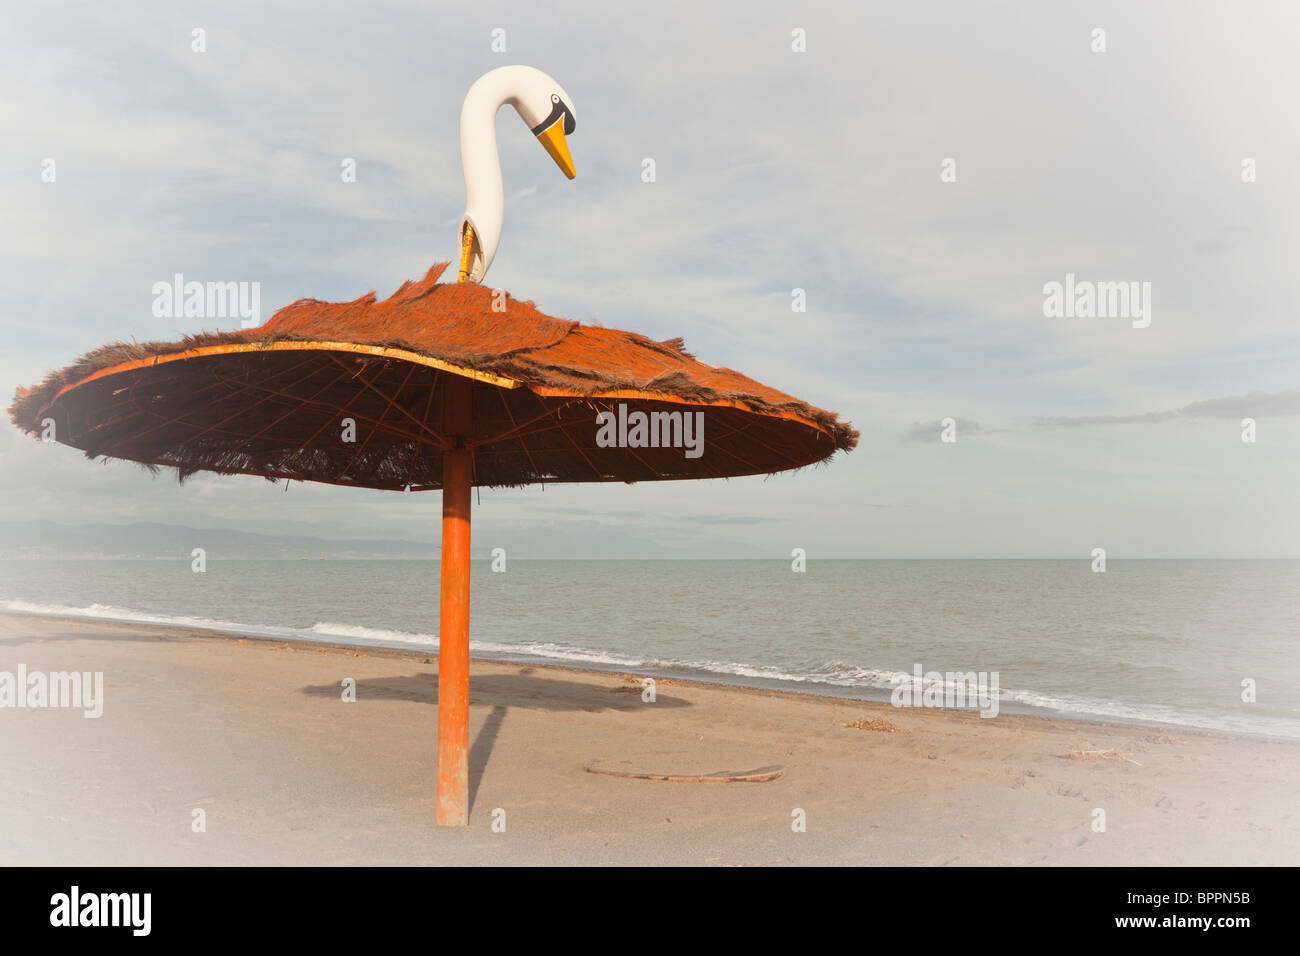 Sunshade with swan's head attached to top on Playamar beach, Torremolinos, Malaga Province, Costa del Sol, Spain - Stock Image